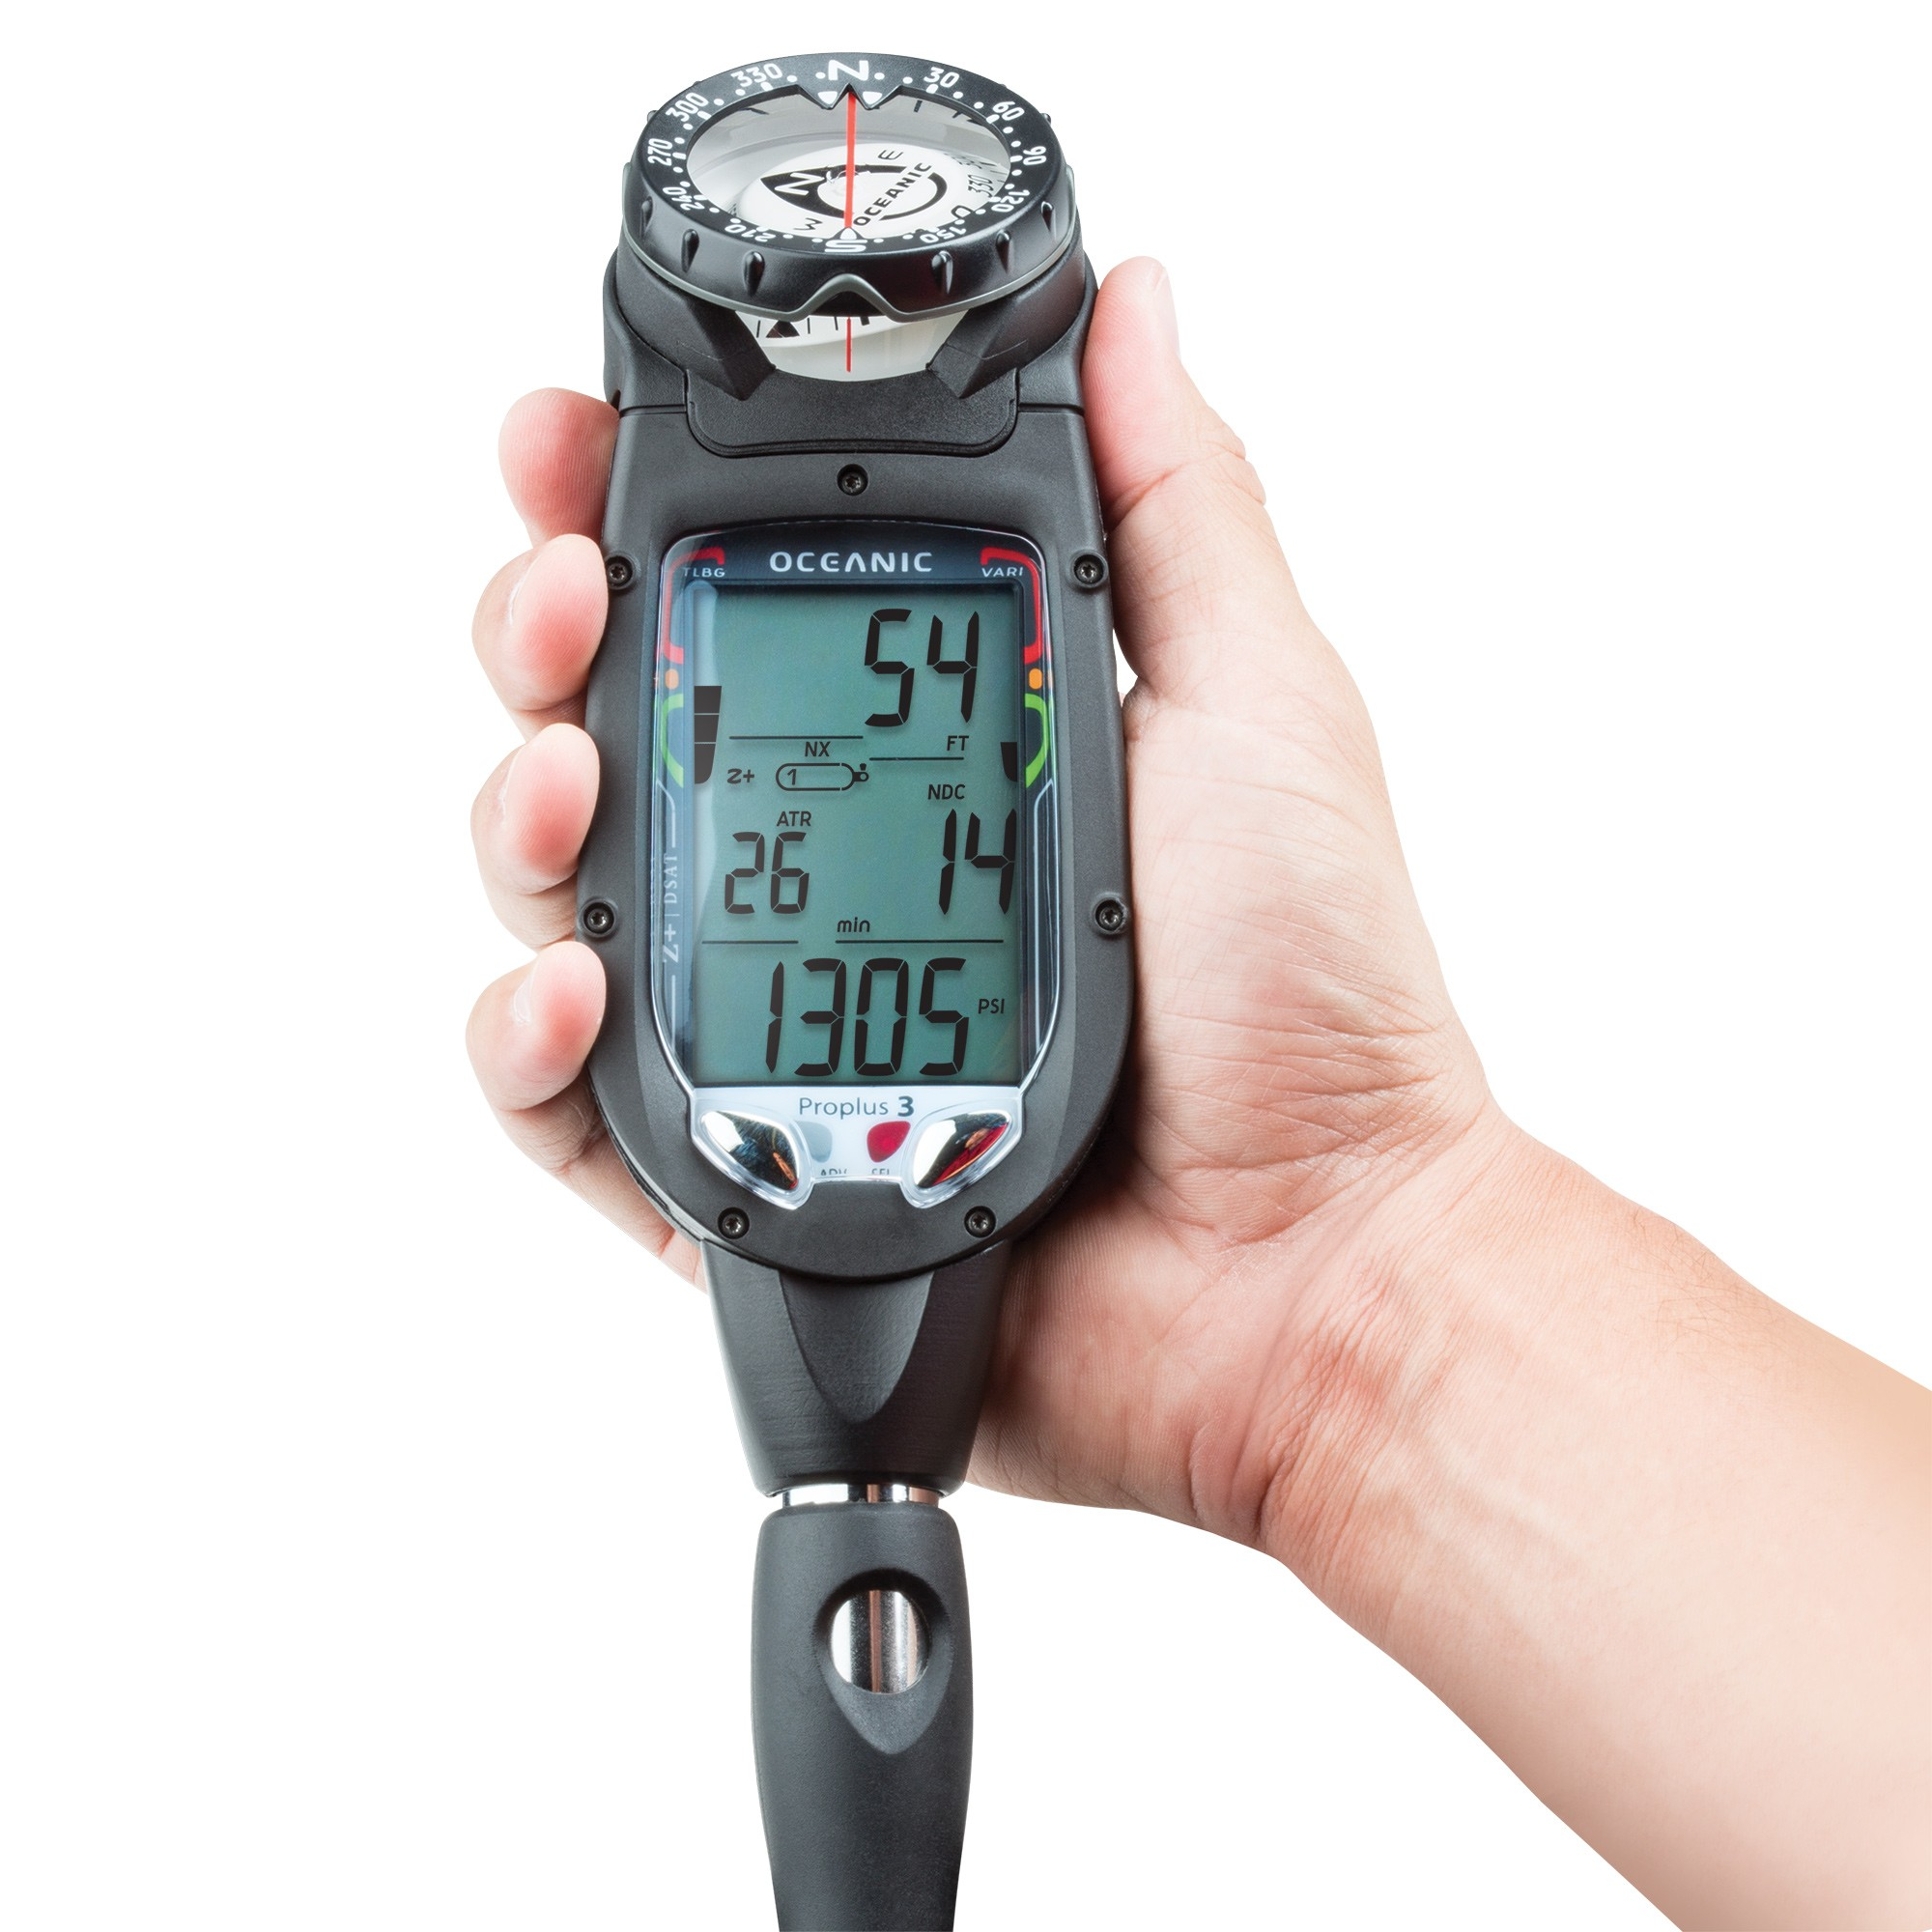 OCEANIC PRO PLUS 3 DELUXE, WITH QD, COMPASS AND USB CABLE in Hand